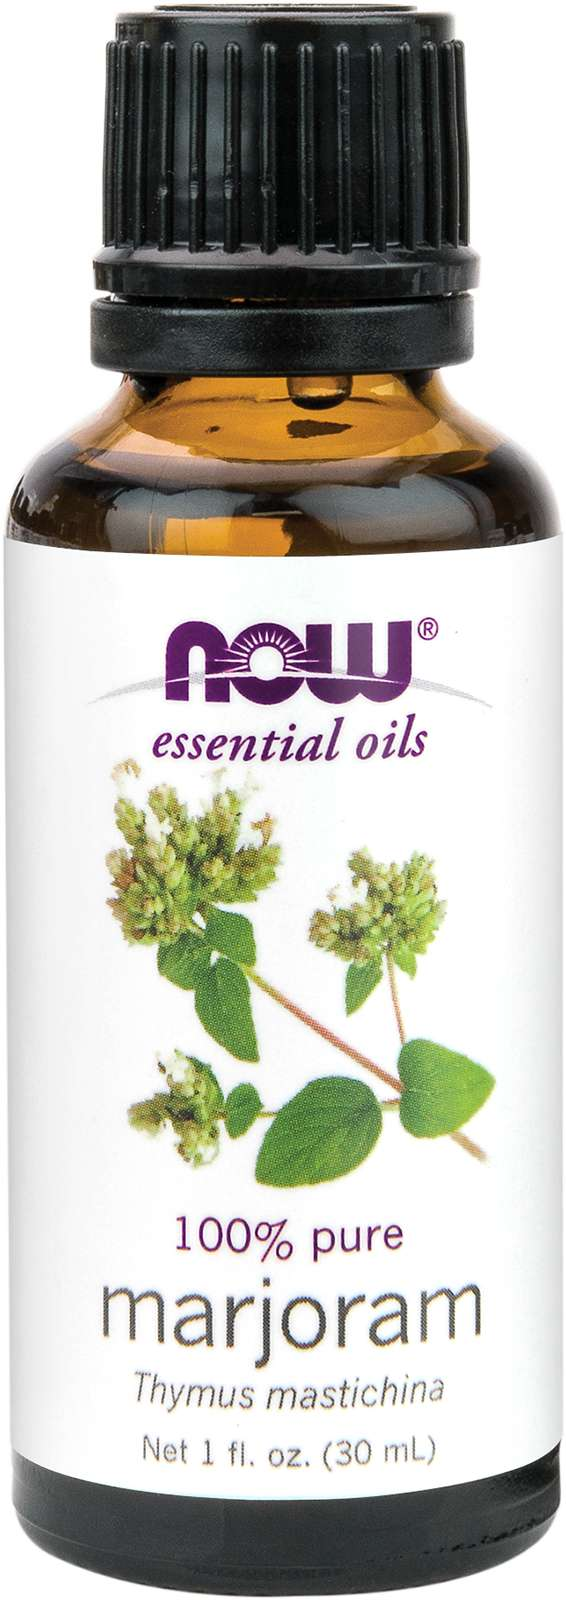 Marjoram Oil (Thymus mastichina)30mL